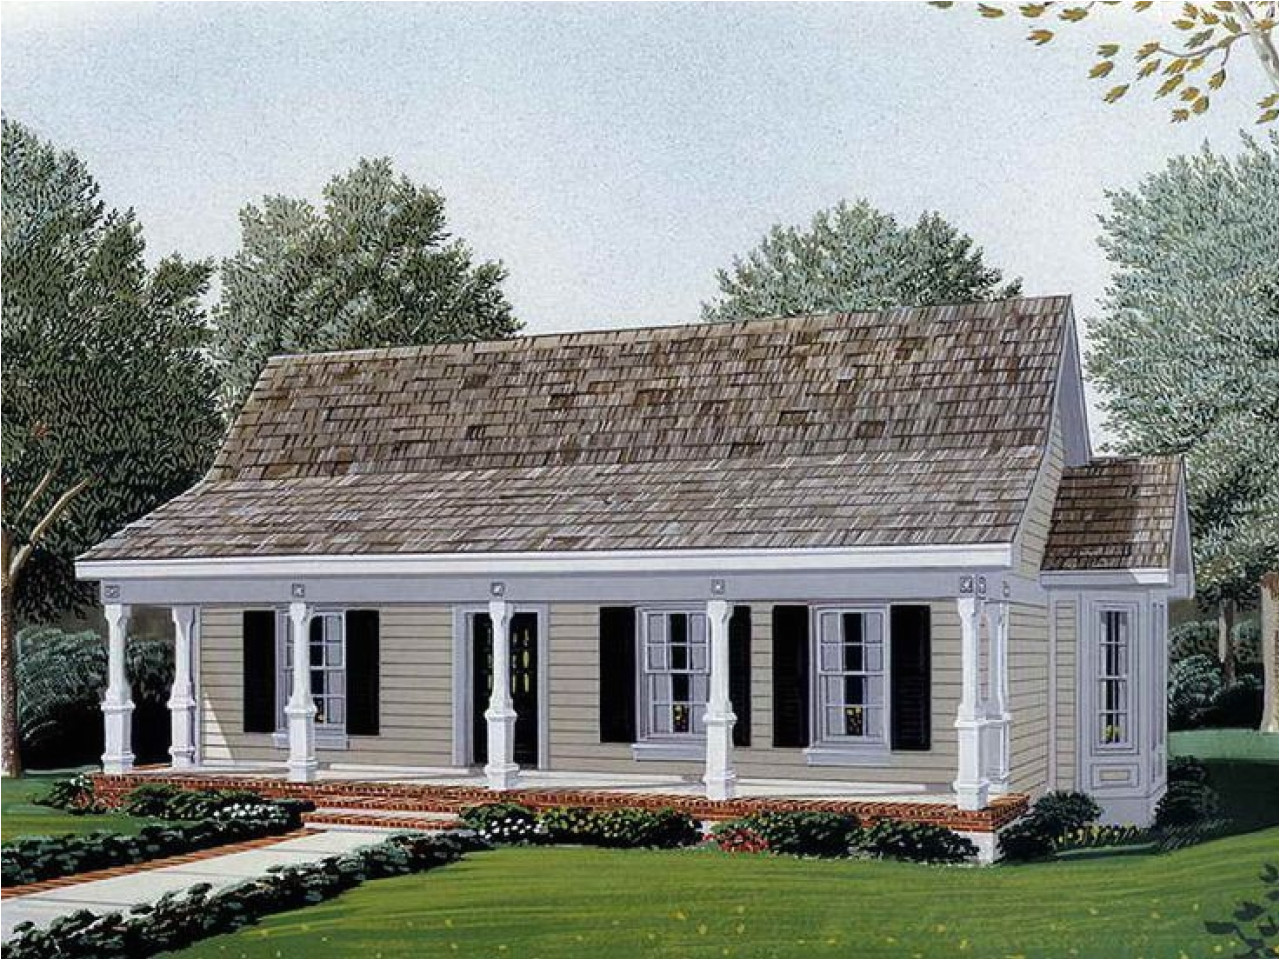 6730c2b72b6879a7 small country style house plans country style house plans